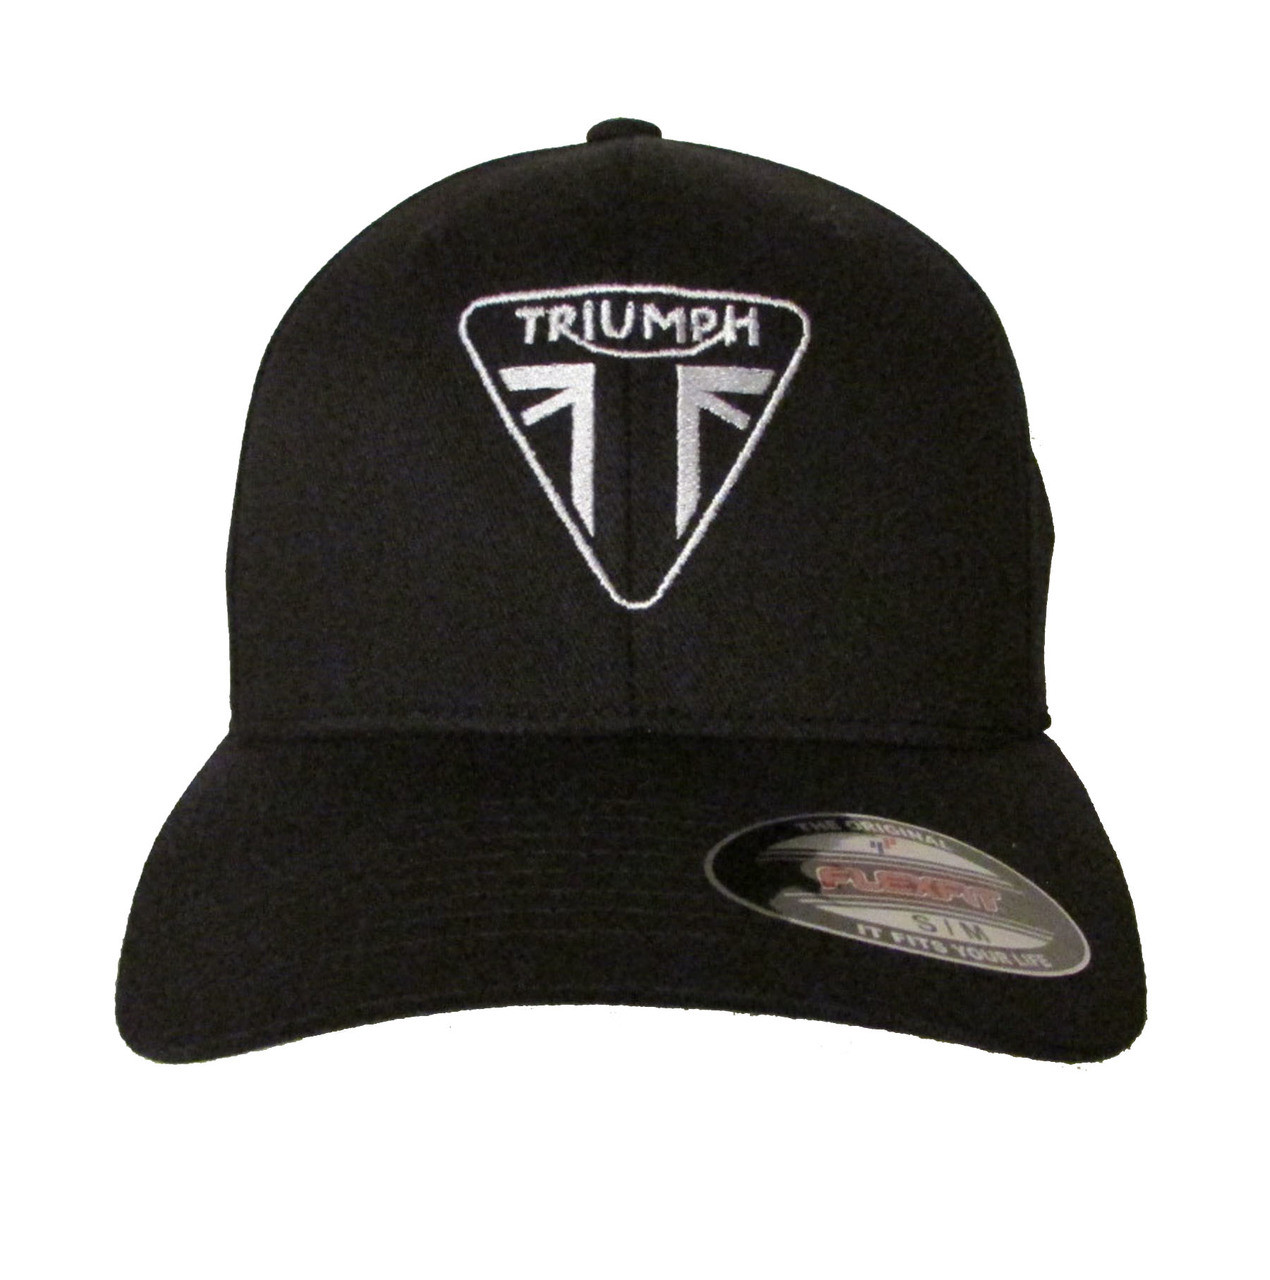 54822ac5bd9 Triumph Motorcycle Logo Ver 1 Embroidered Baseball Hat - Cap